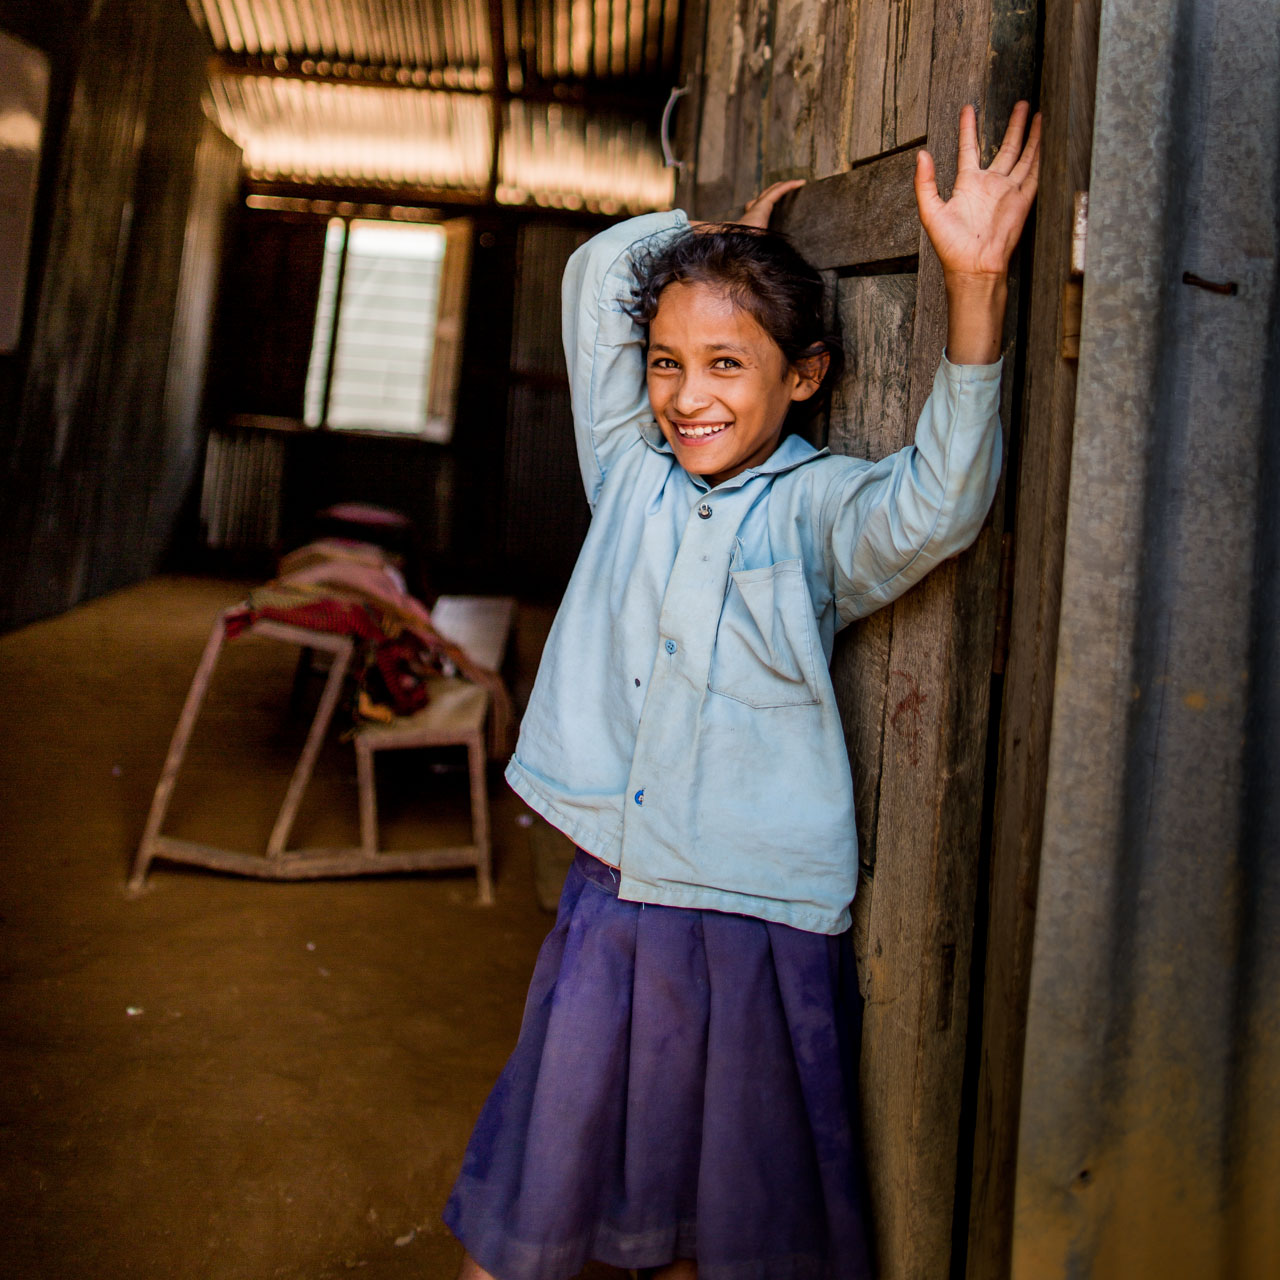 Girl posing in frontof her classroom. The school benches in the background, twisted by the destructive force of the earthquake, are in need of some maintenance.